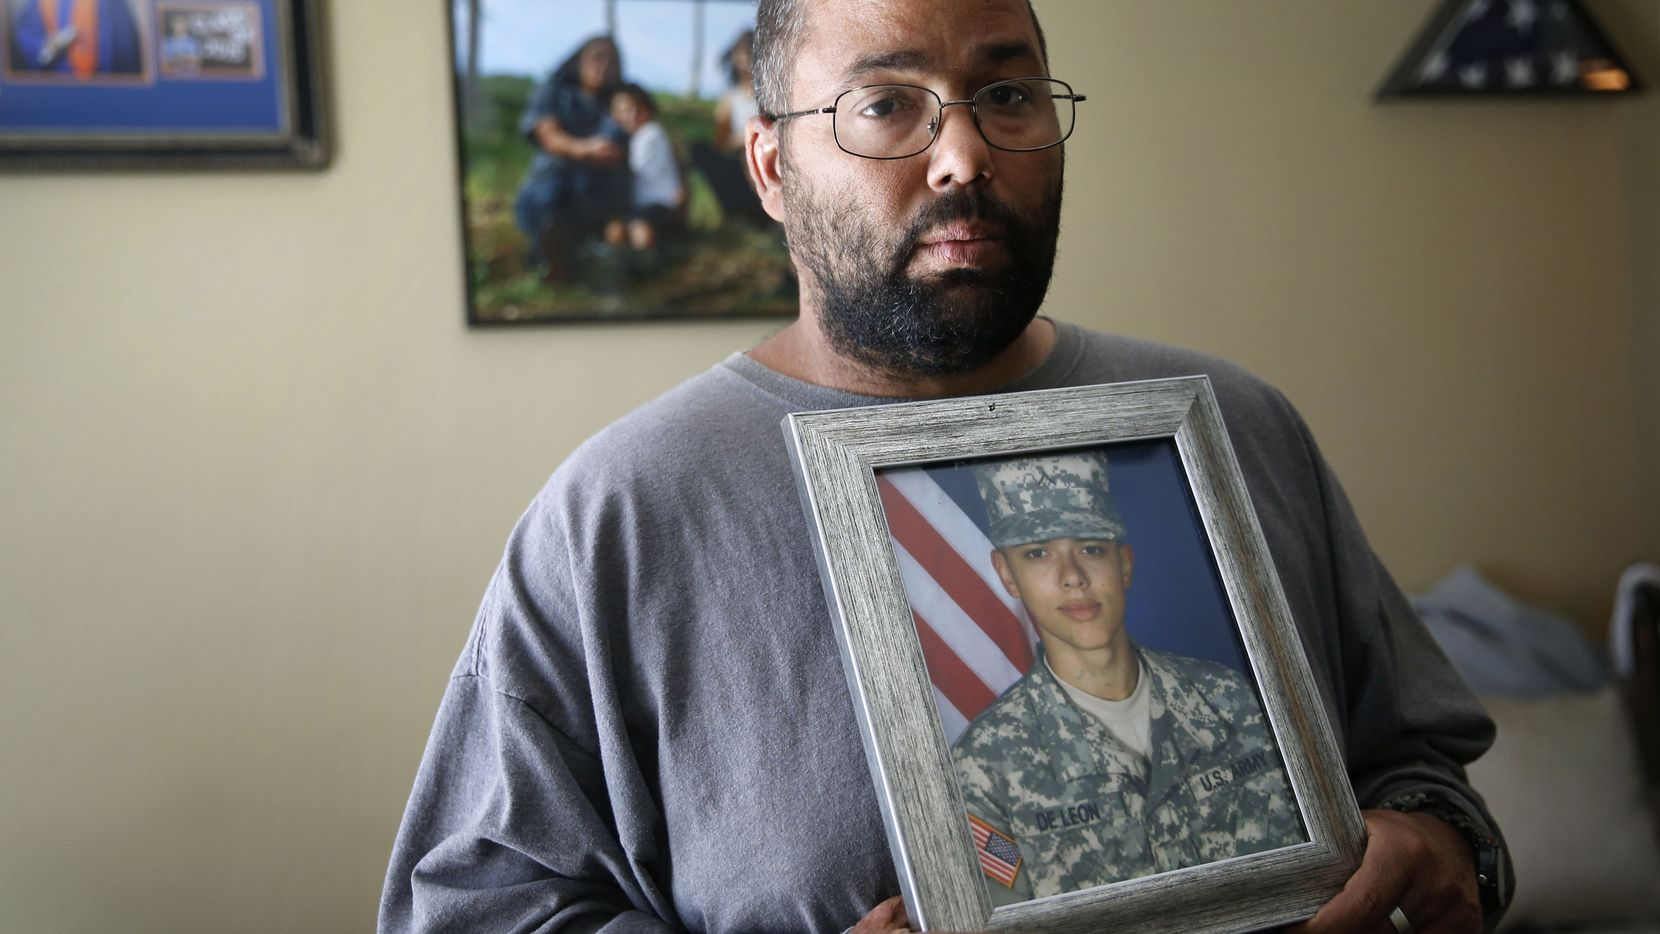 Ricky DeLeon holds a portrait of his son, Isaac Lee DeLeon, at his home in San Angelo on Tuesday, May 2, 2017.  The 19-year-old Army private died in a flooding accident during a training exercise at Fort Hood.